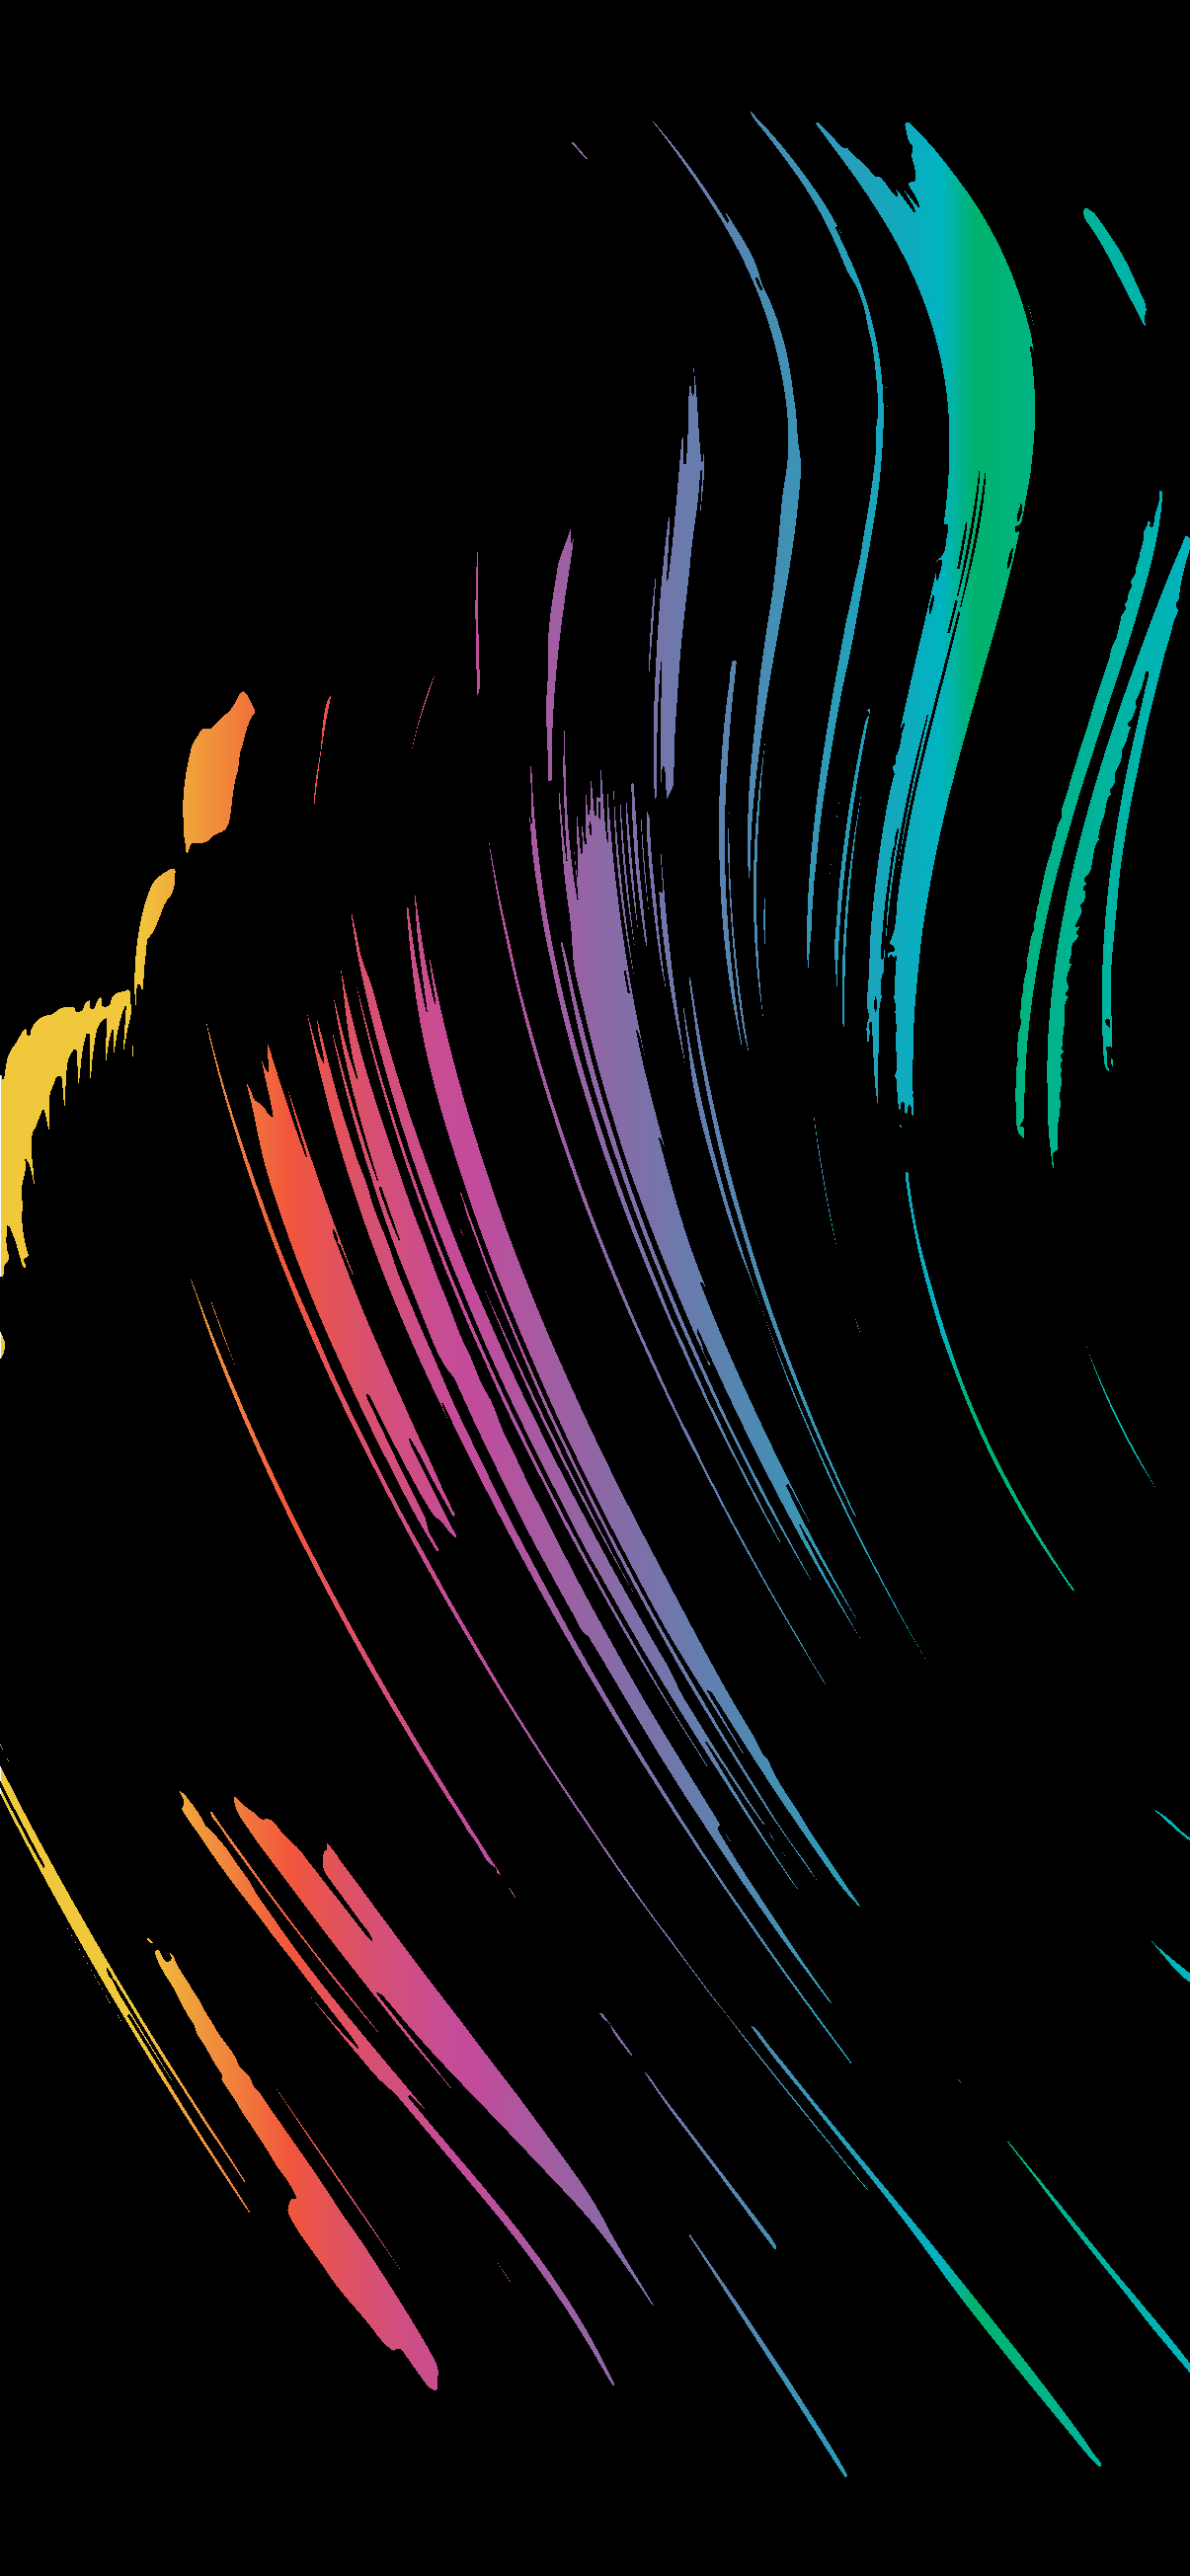 wallpaperize-black-amoled-colorful-1205x2609